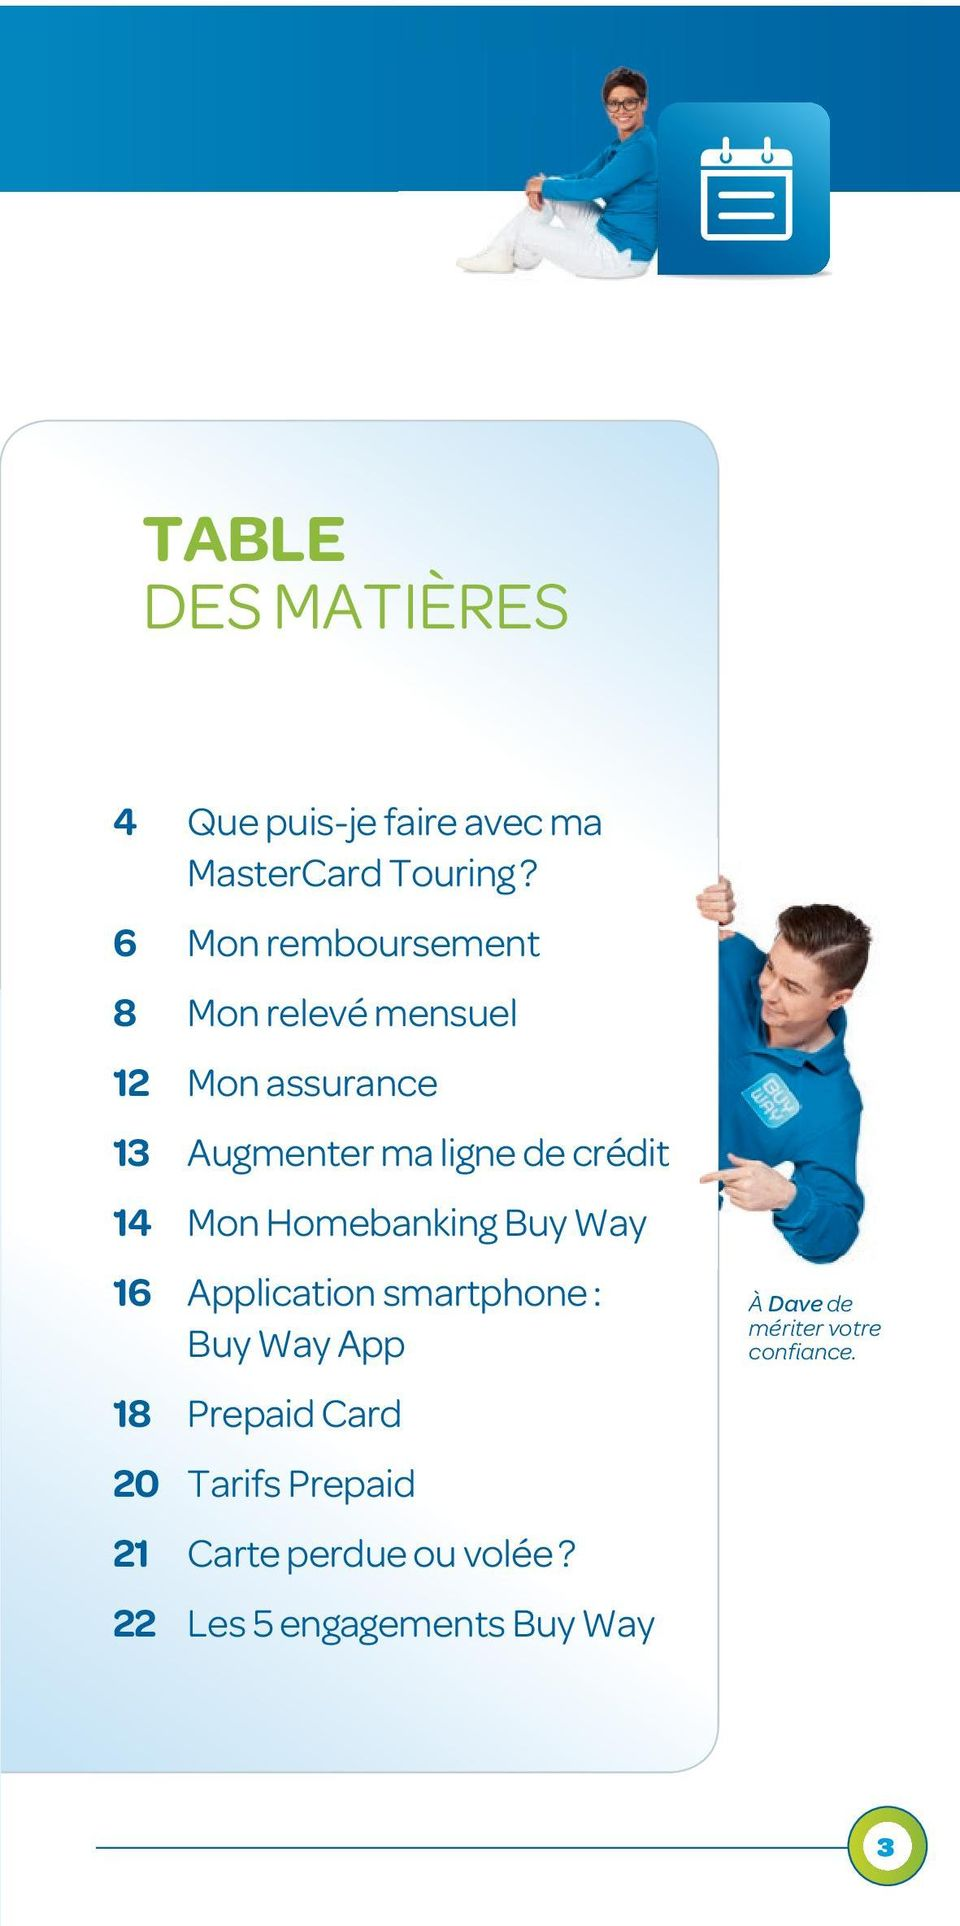 crédit 14 Mon Homebanking Buy Way 16 Application smartphone : Buy Way App 18 Prepaid